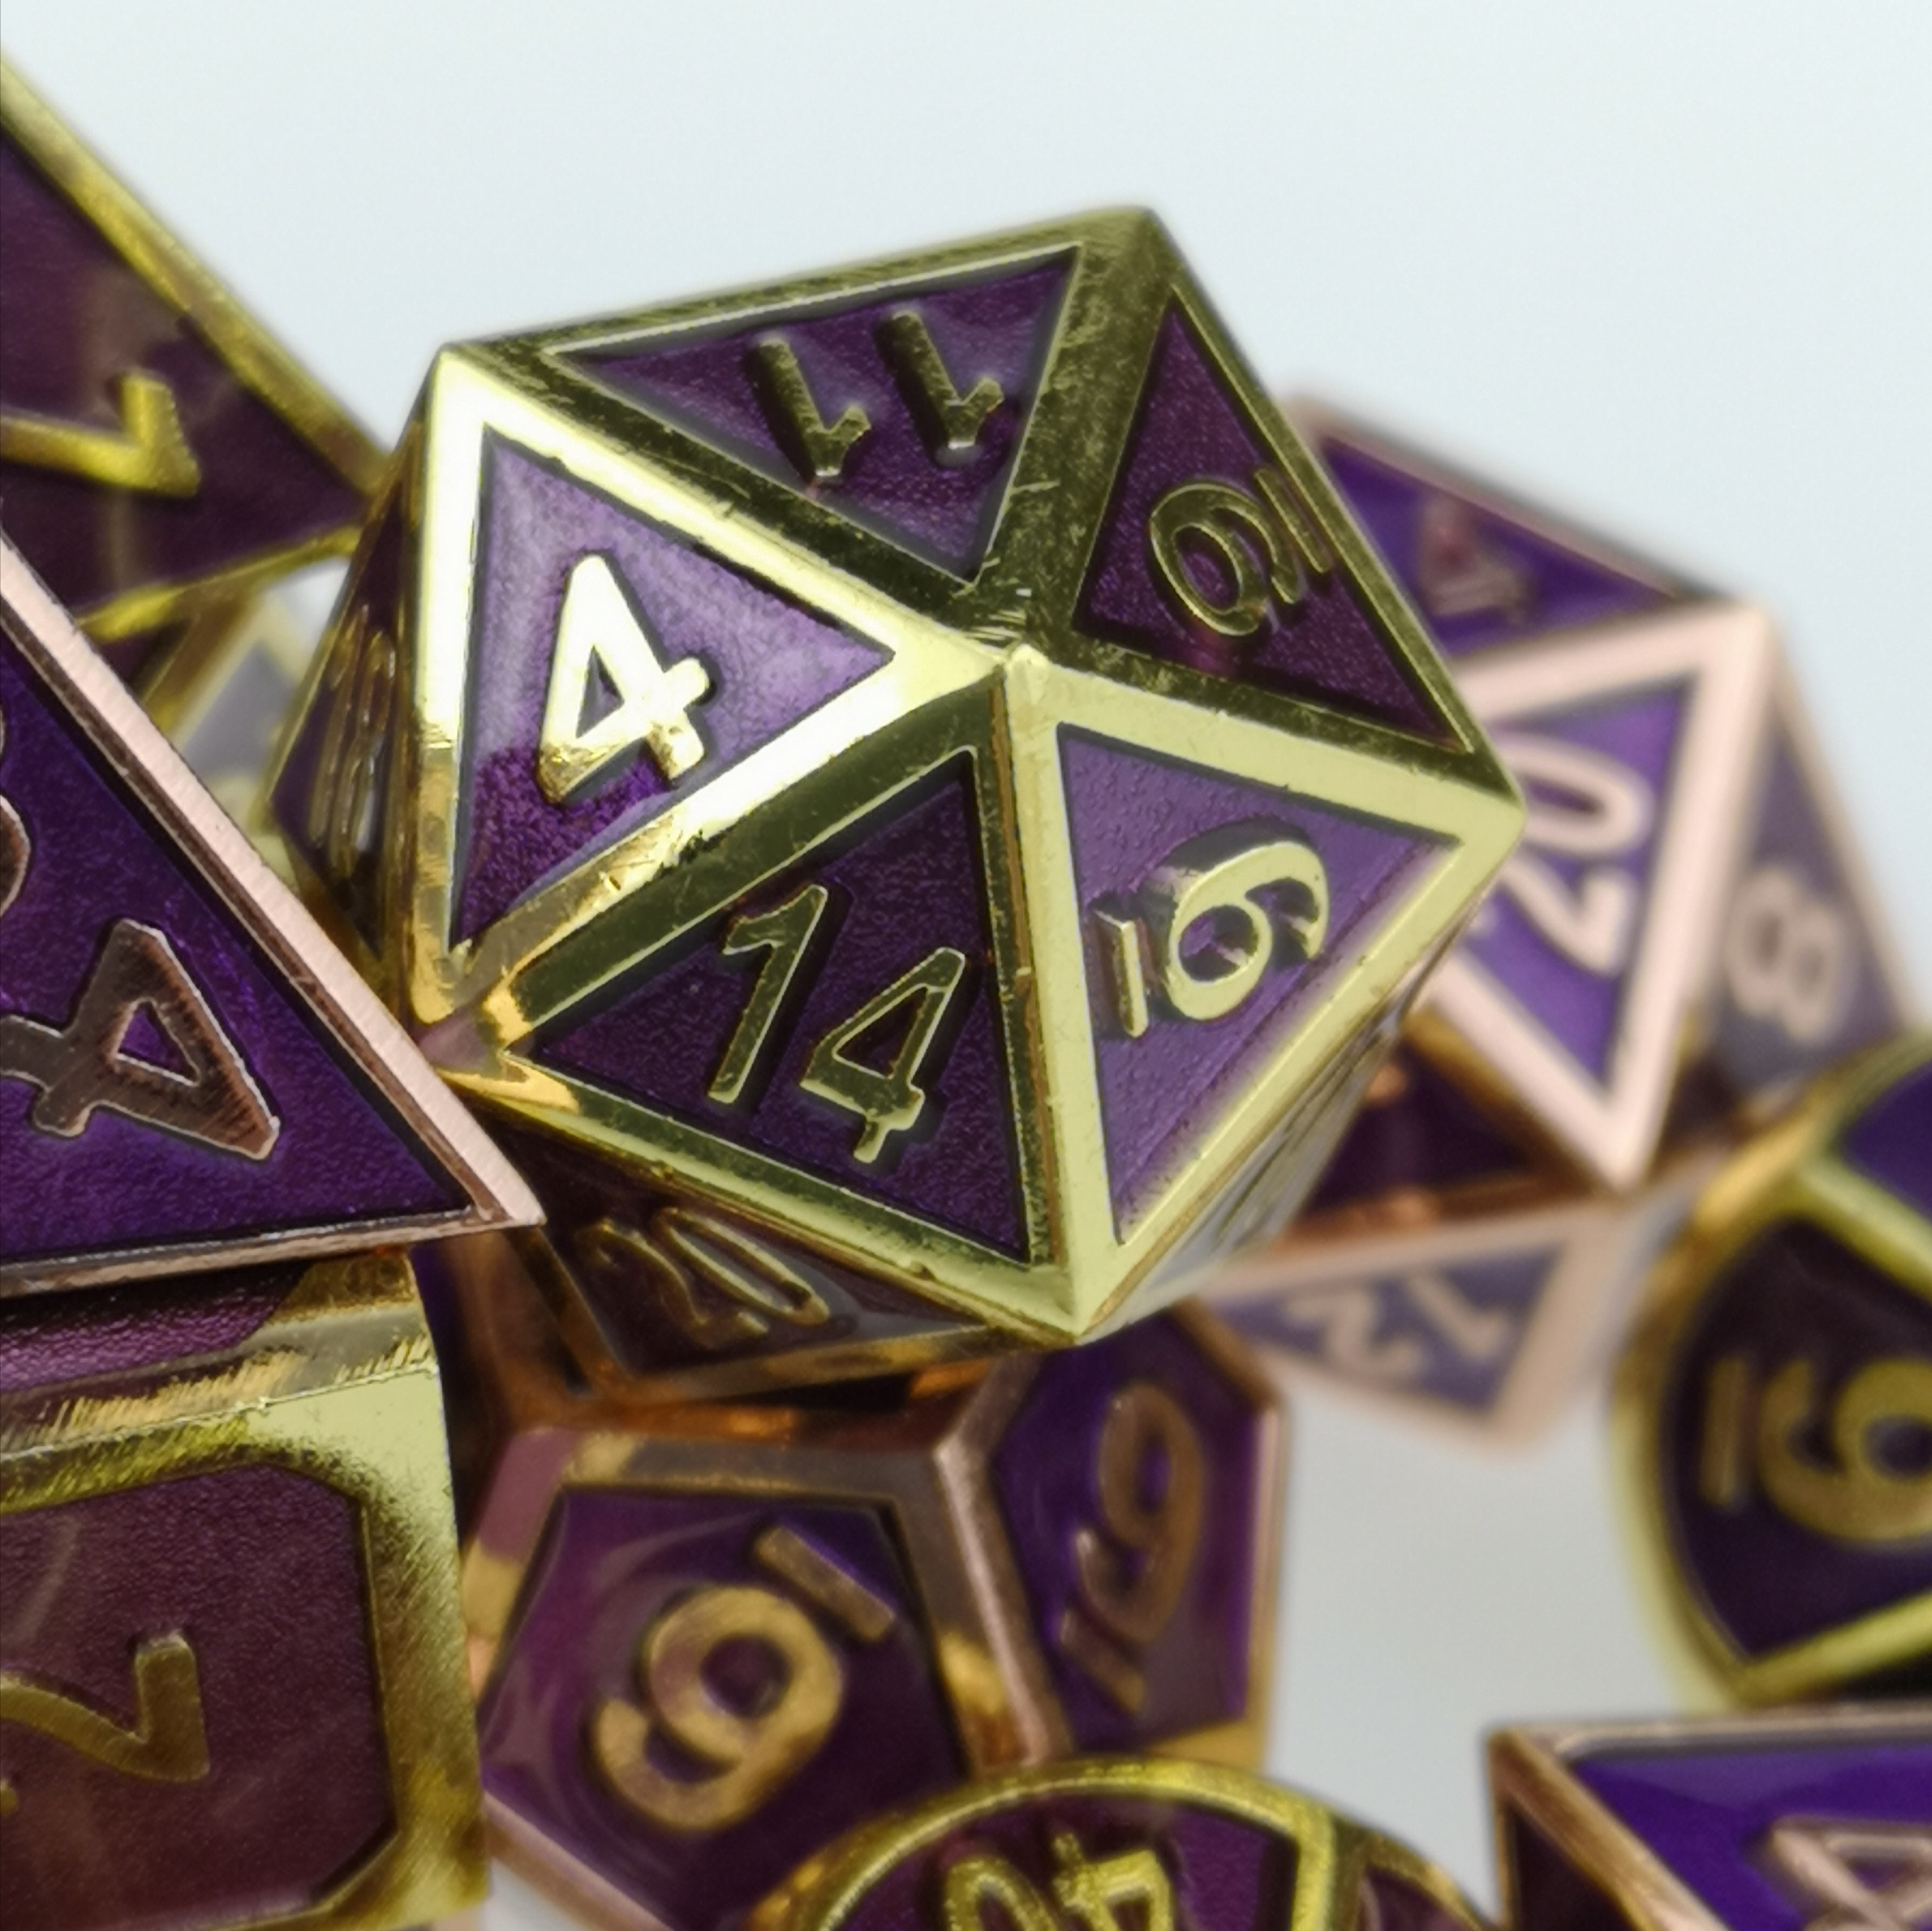 Standard 7-Die Set Purple Metal Dice Copper / Brass